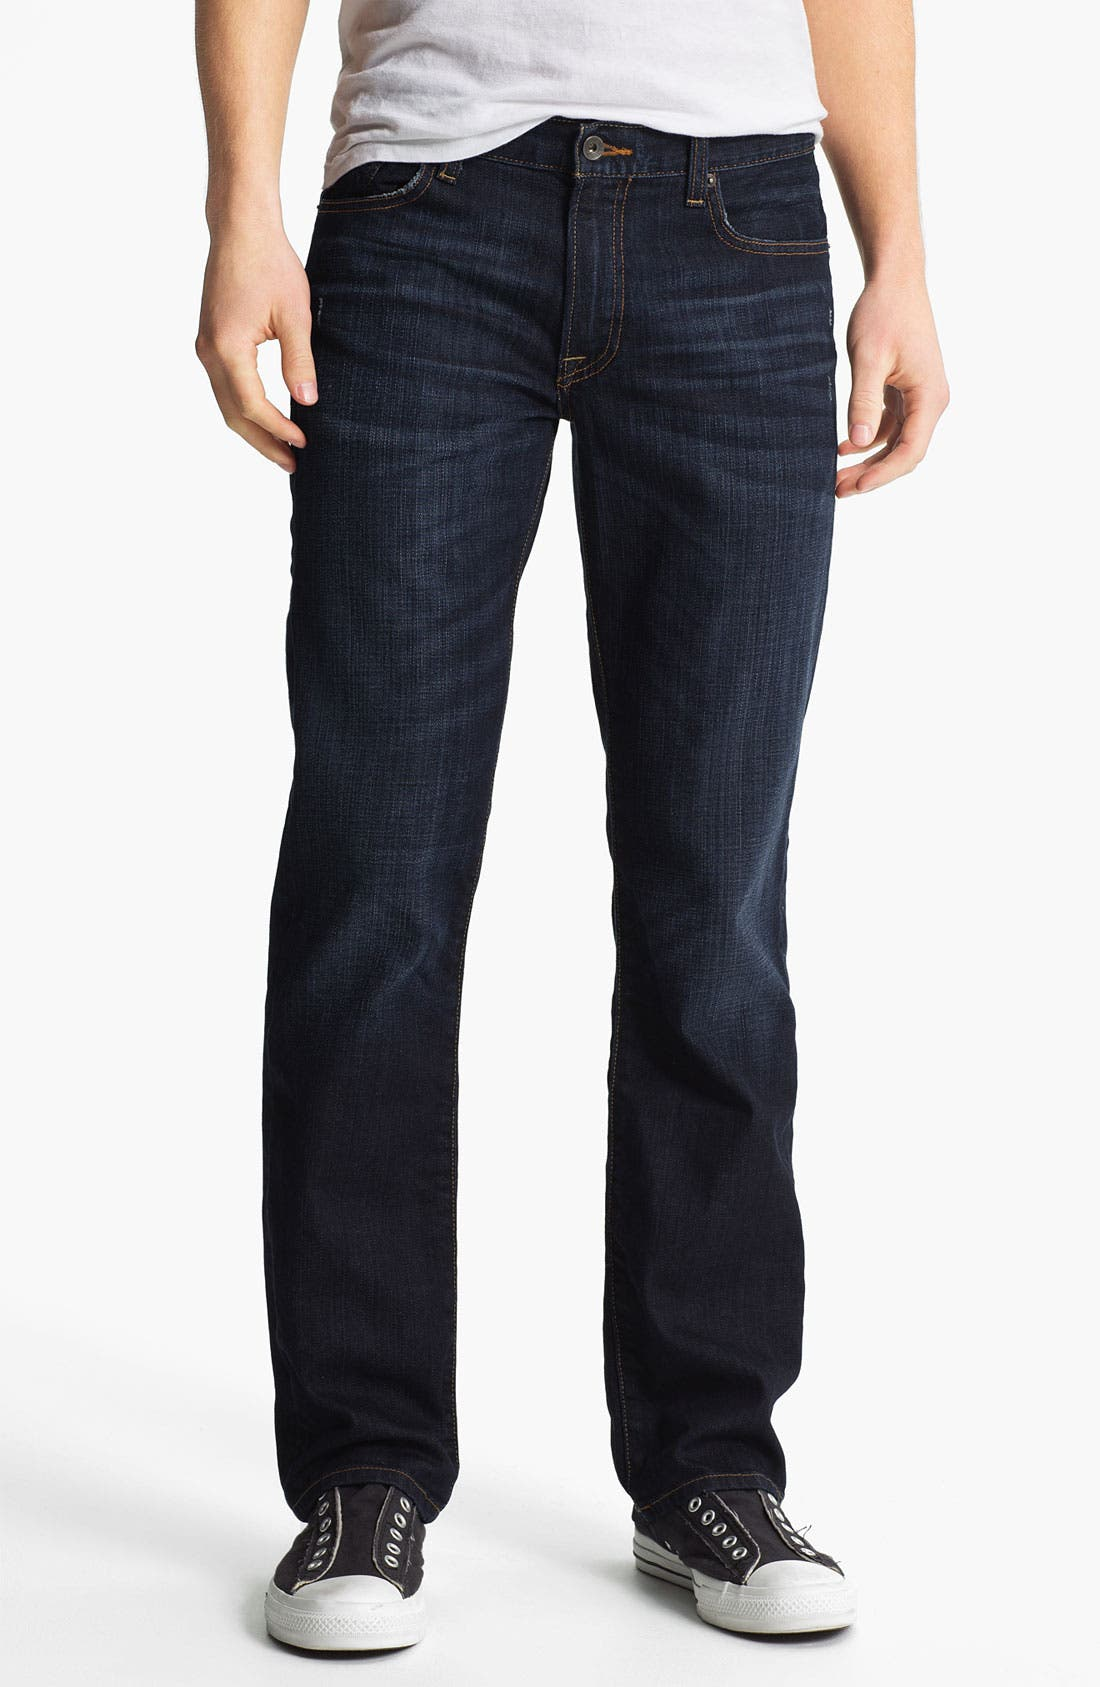 Alternate Image 1 Selected - Lucky Brand '221 Original' Straight Leg Jeans (Dark Kenfield)